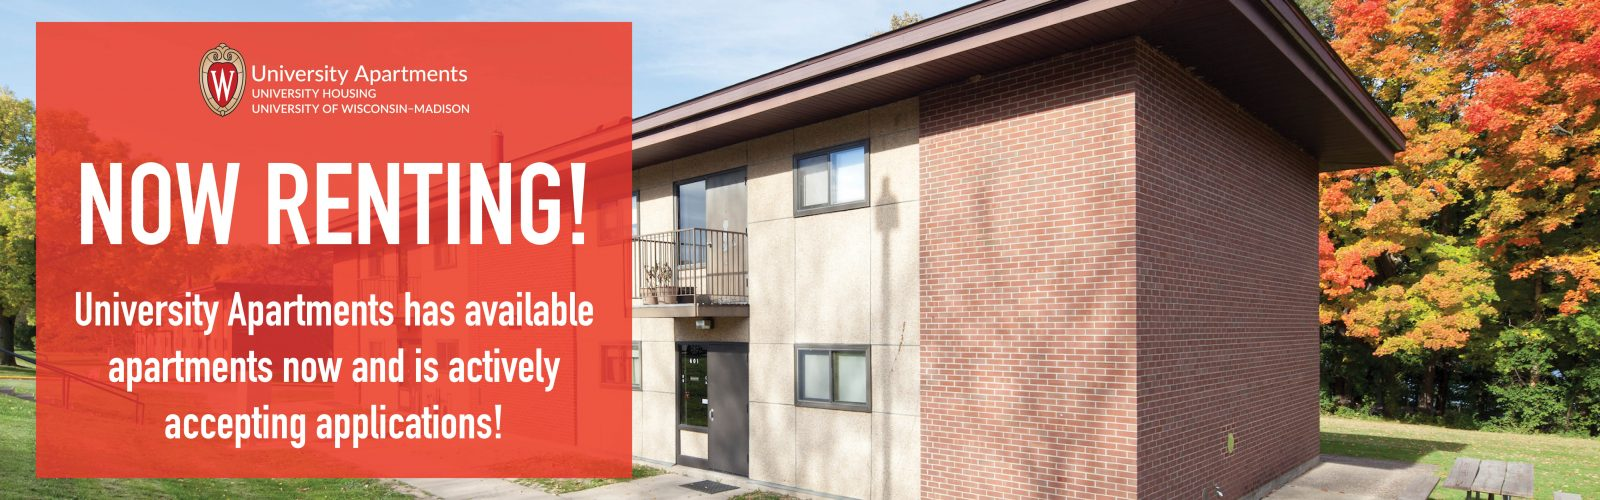 University Apartments now renting! UA has available apartments now and is actively accepting applications!